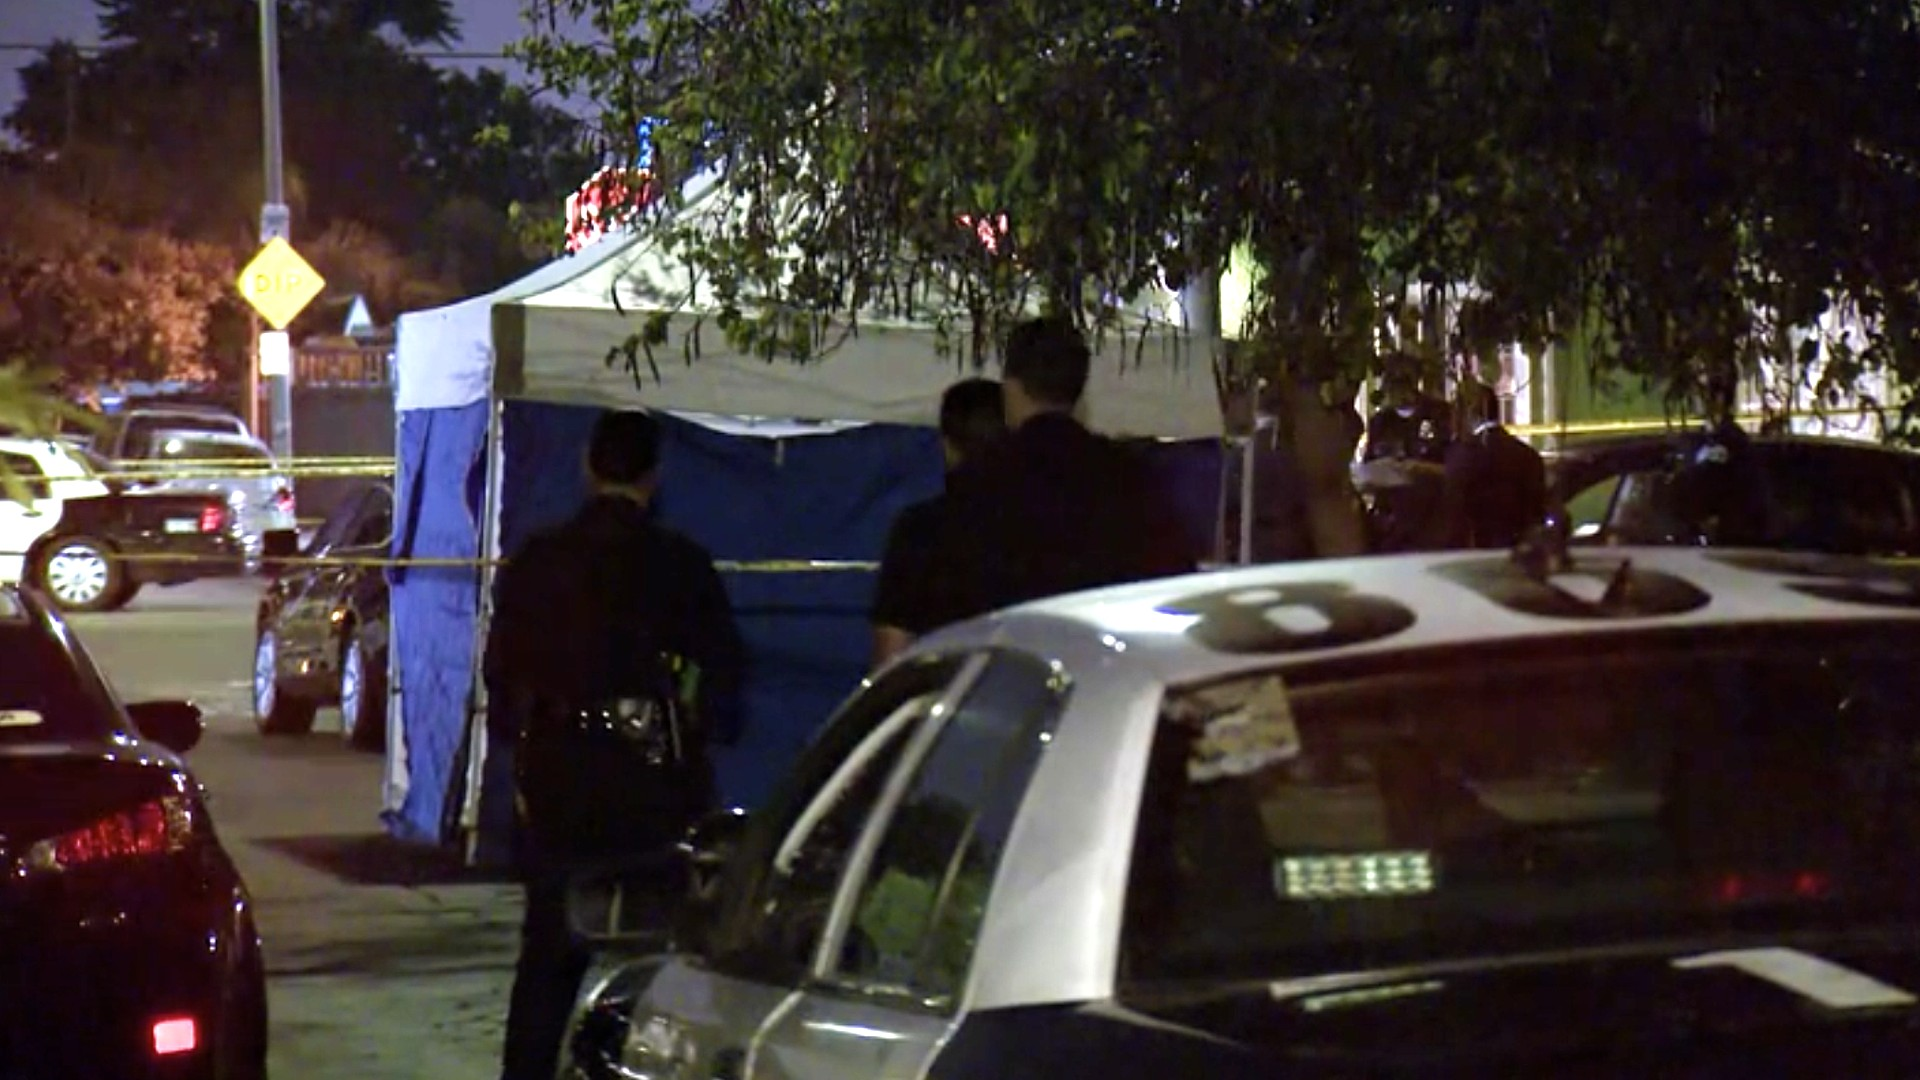 Police investigate a fatal shooting in Watts on July 7, 2020. (KTLA)